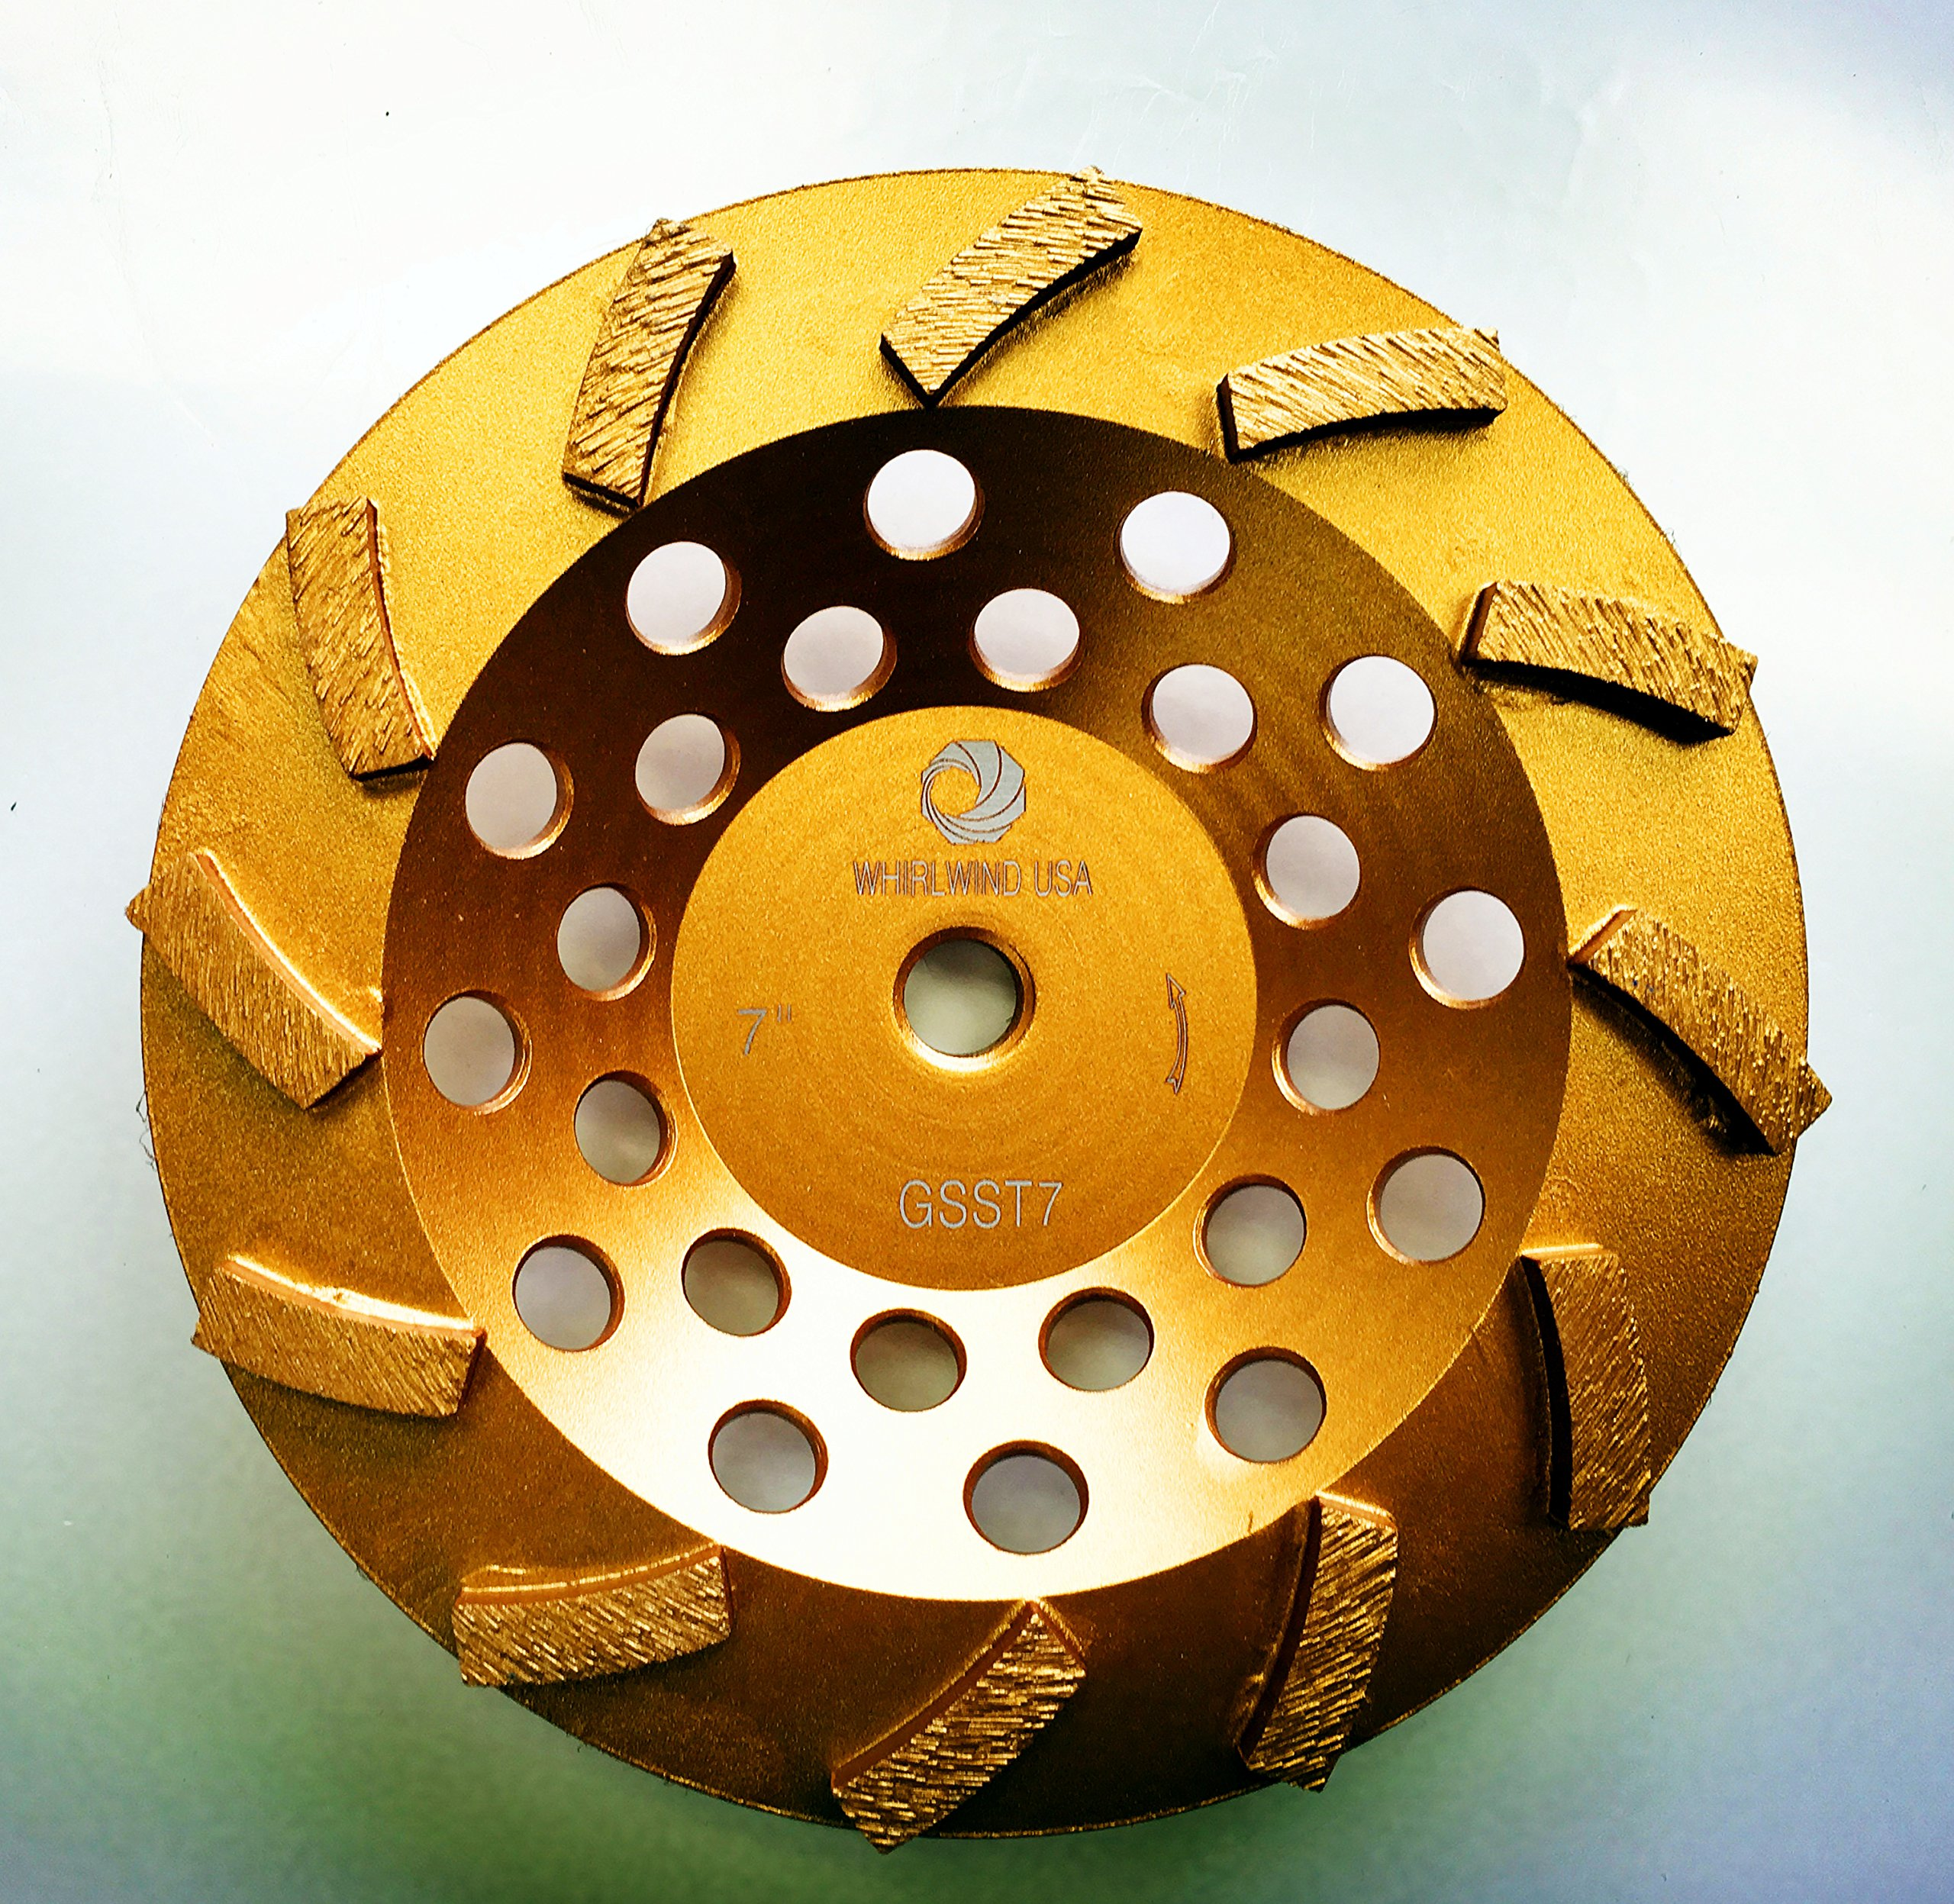 Whirlwind USA GSST 7 in. Heavy Duty Diamond Grinding Cup Wheel Standard Segmented Turbo Cup with 5/8-Inch 11mm Thread (7''-S)